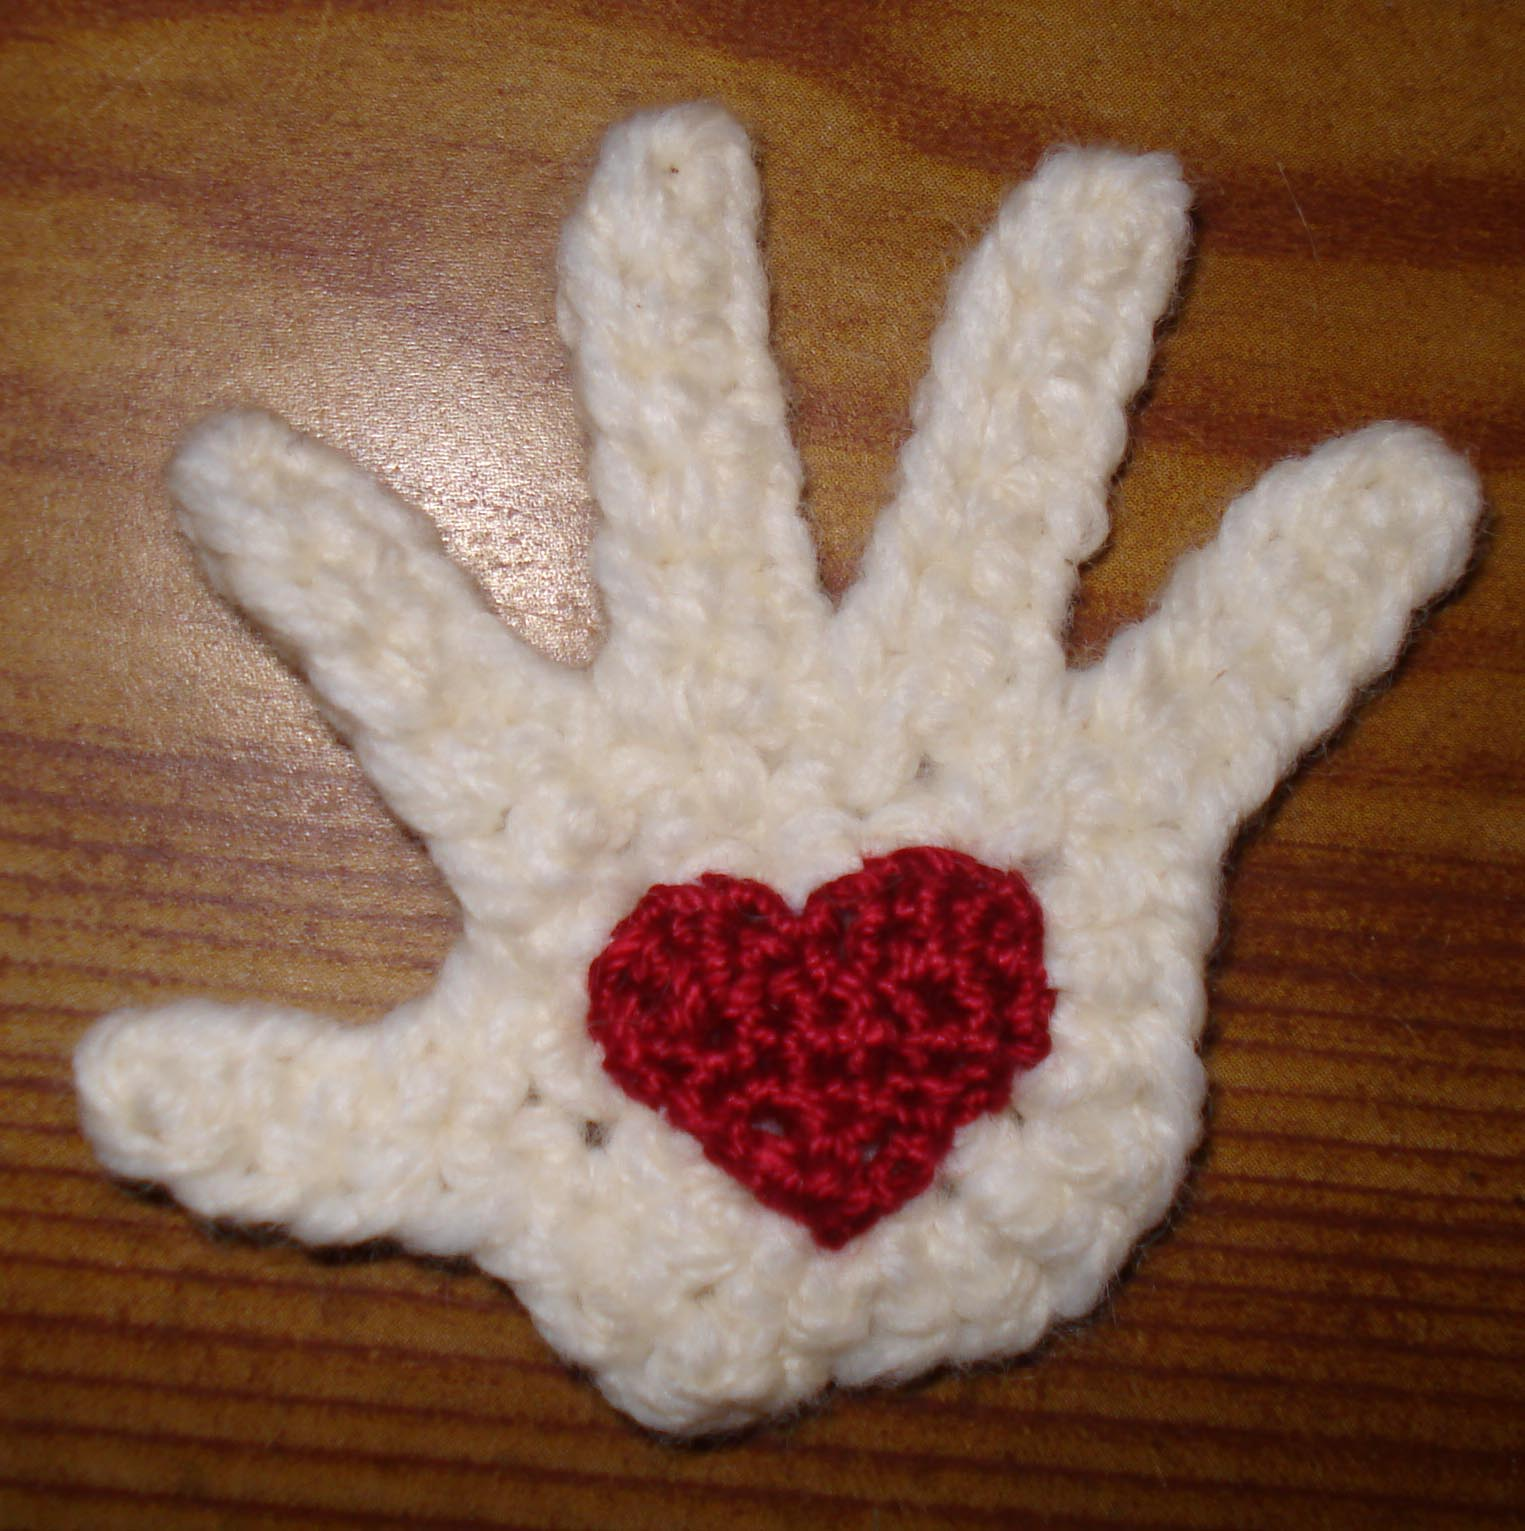 Crocheted hand with heart